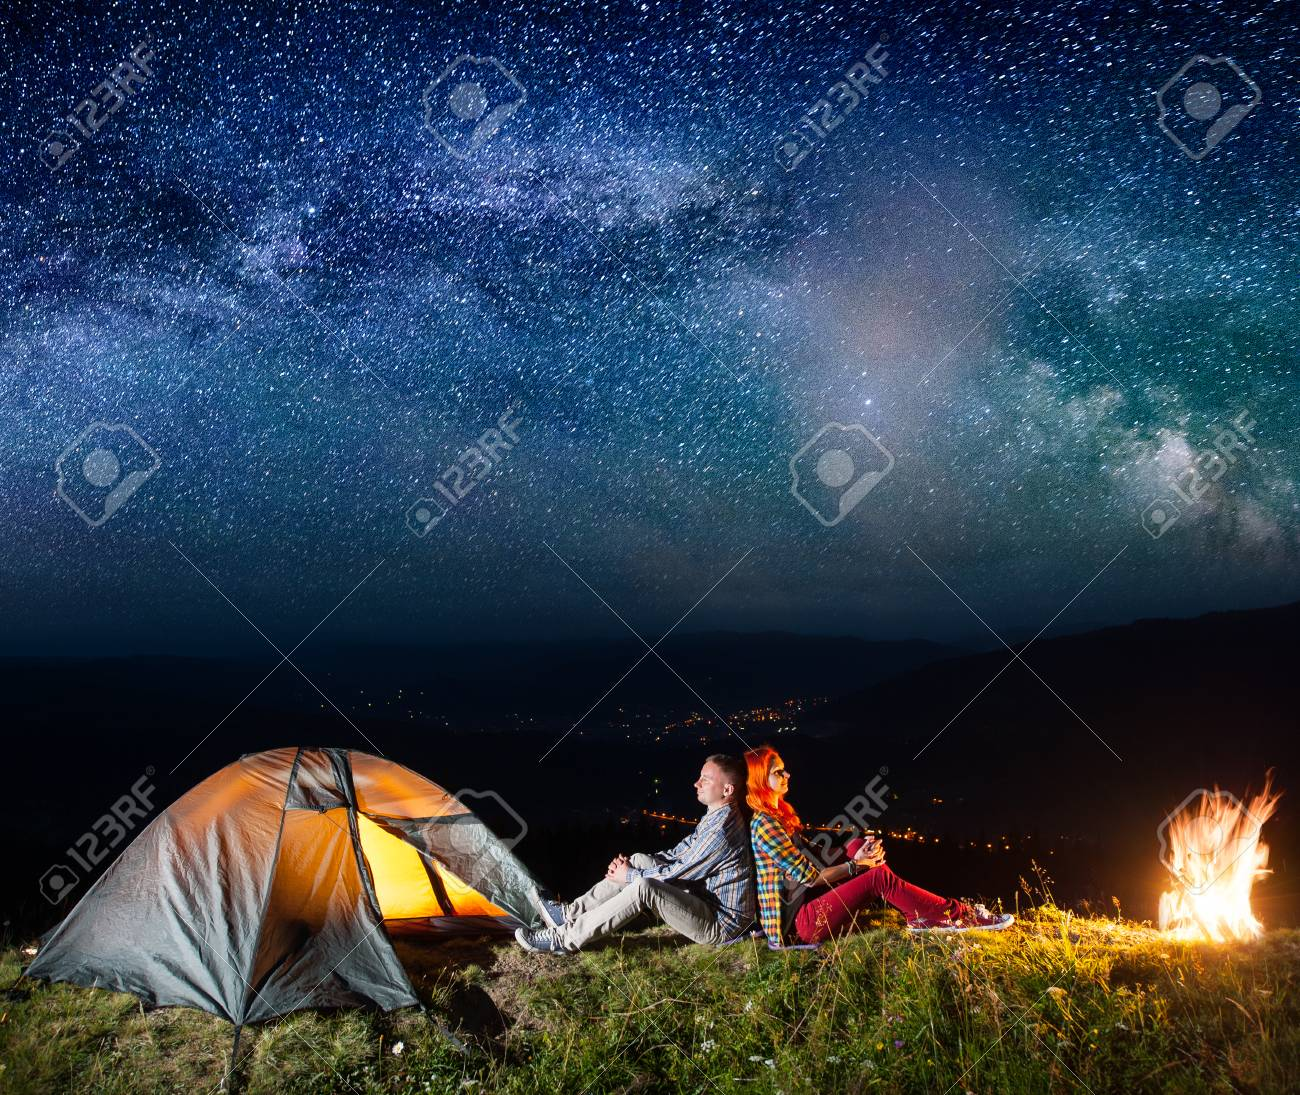 Romantic couple sitting by bonfire near glowing tent under incredibly beautiful starry sky. On the : glowing tent - memphite.com